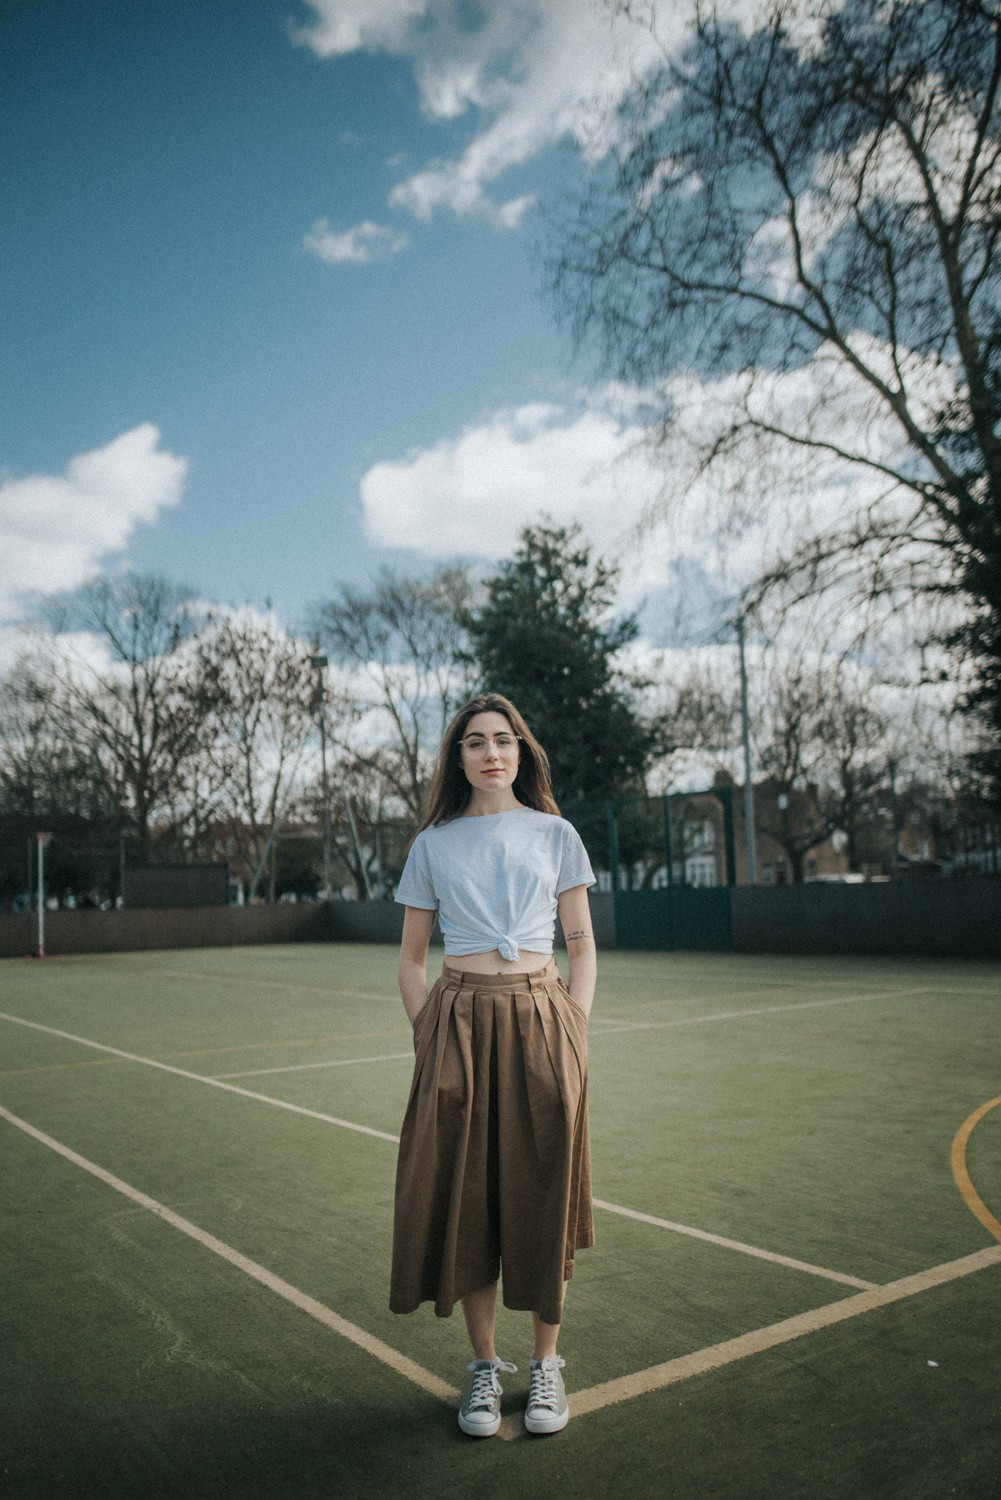 Youtuber Turned Musician Dodie Clark Built An Adoring Fanbase Without A Single Official Release Interview The Line Of Best Fit